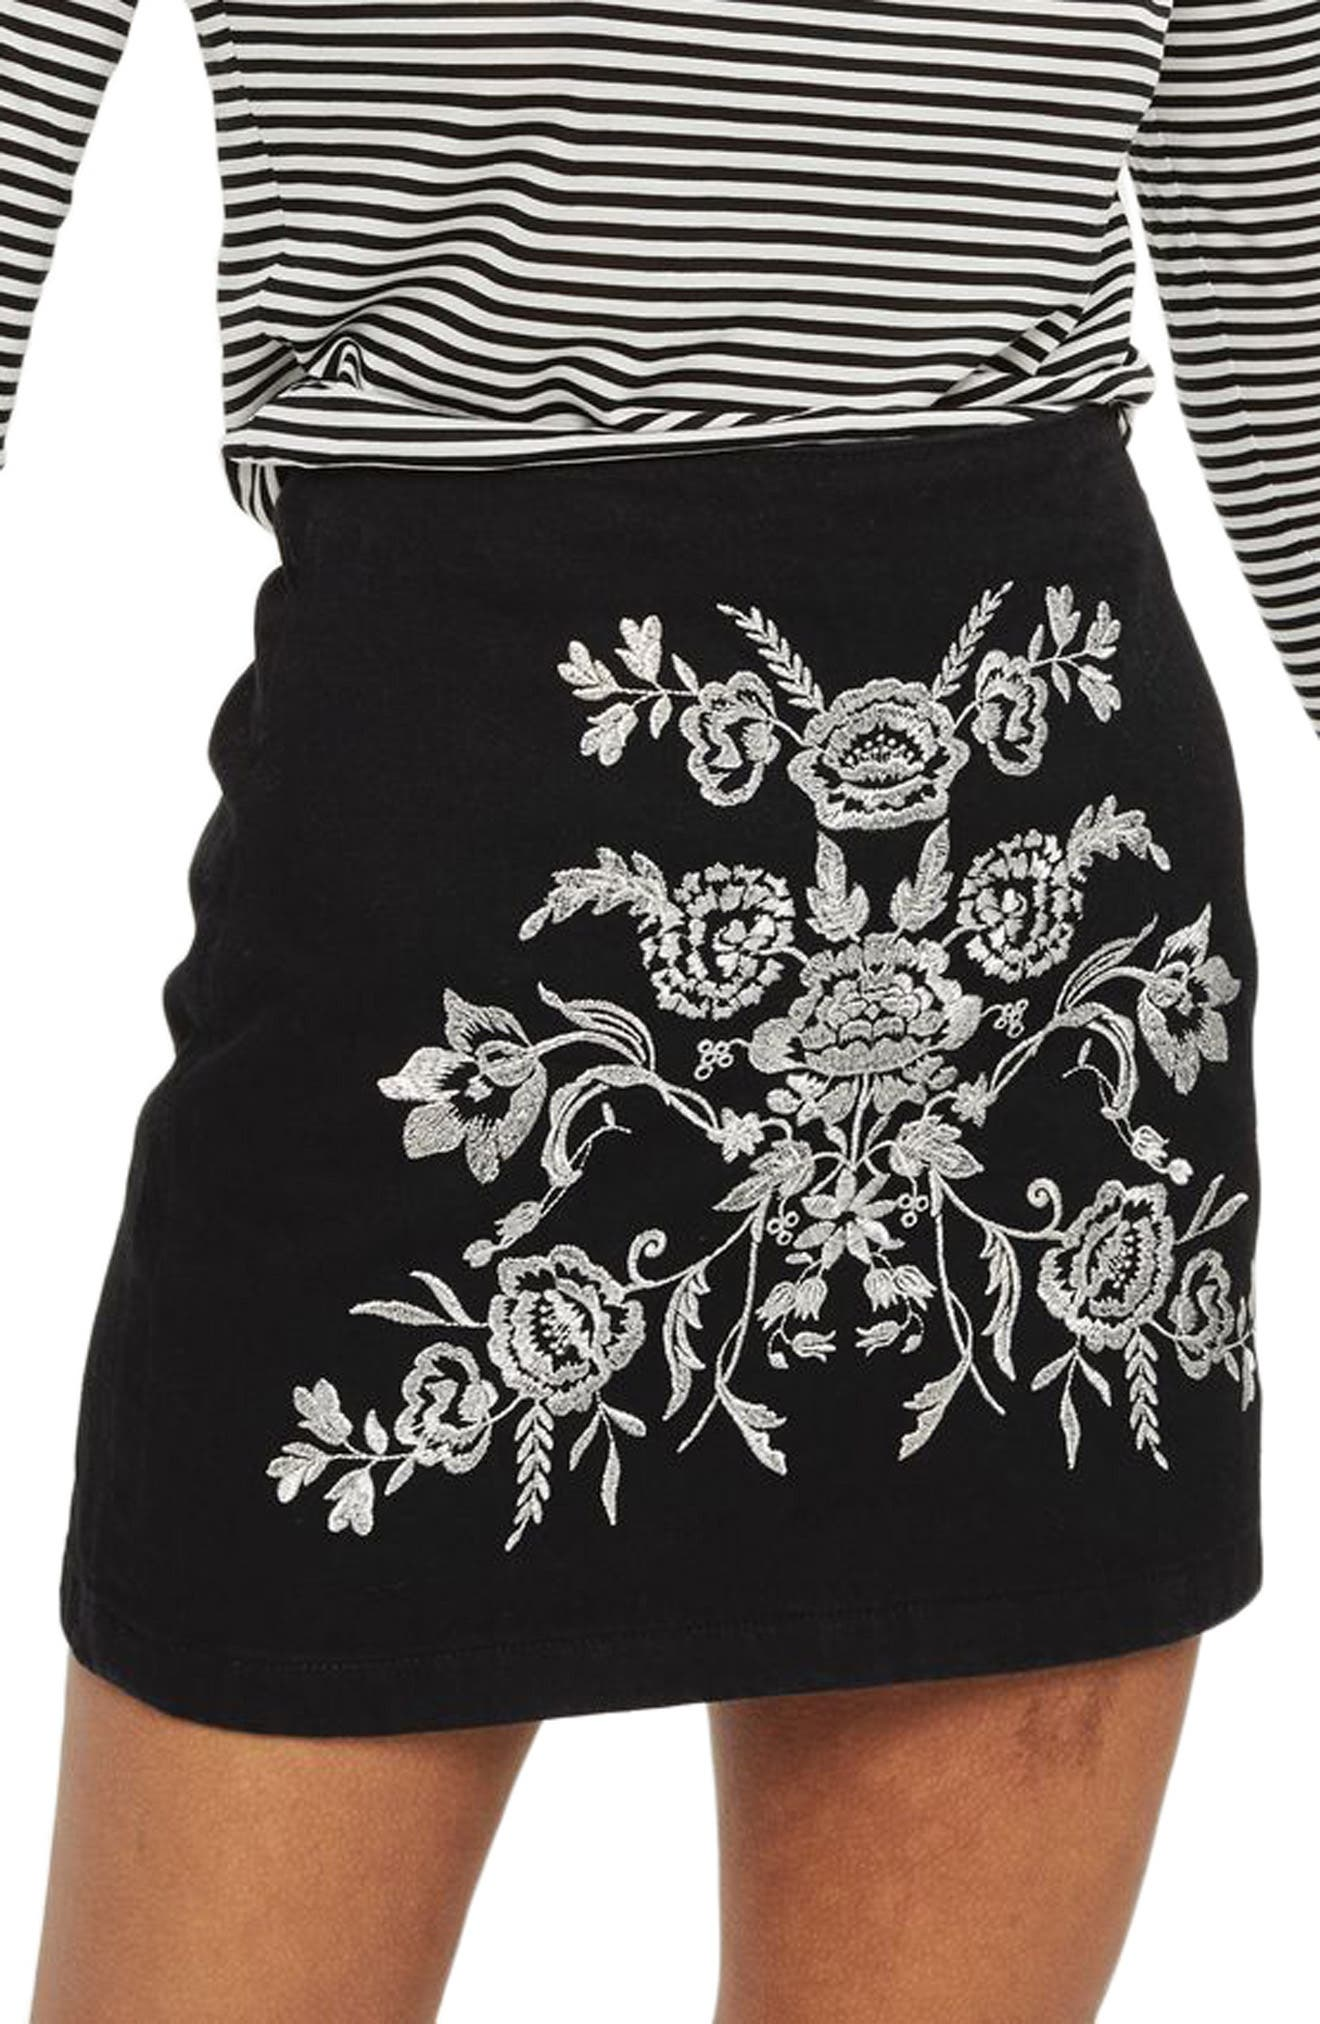 Floral Embroidered A-Line Skirt,                         Main,                         color,